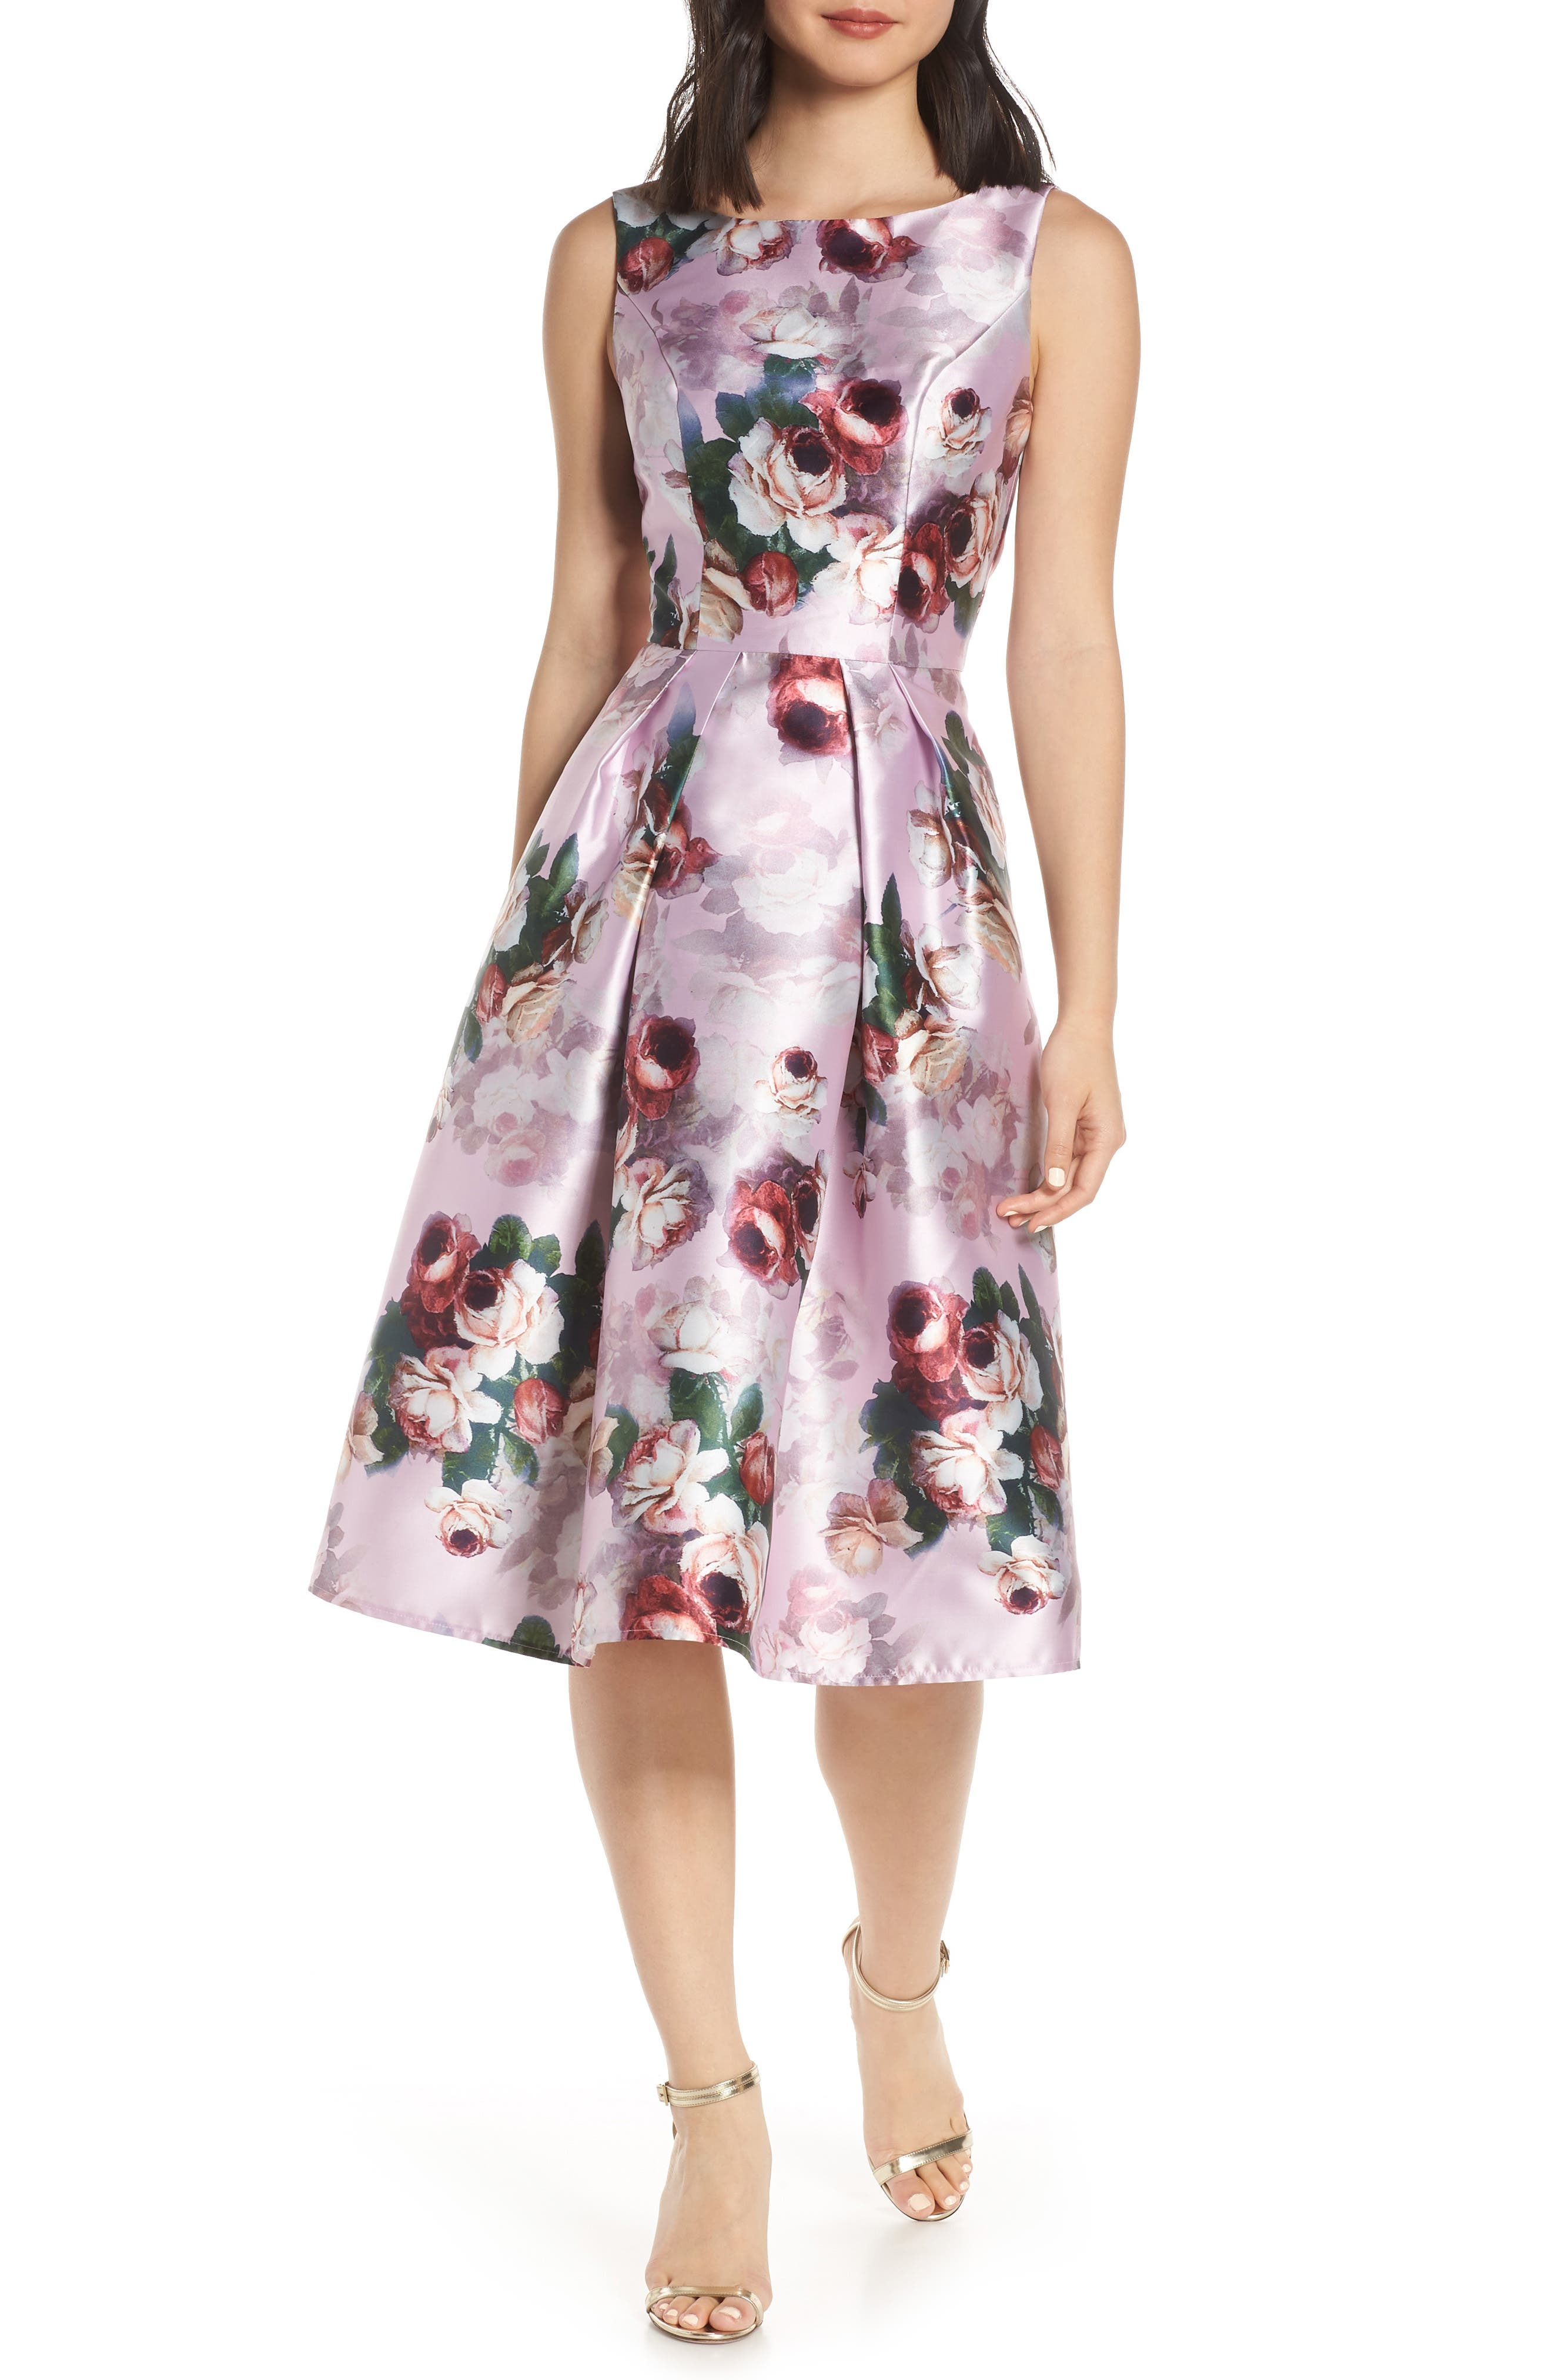 Chi Chi Marilyn Floral Print Satin Cocktail Dress, Pink